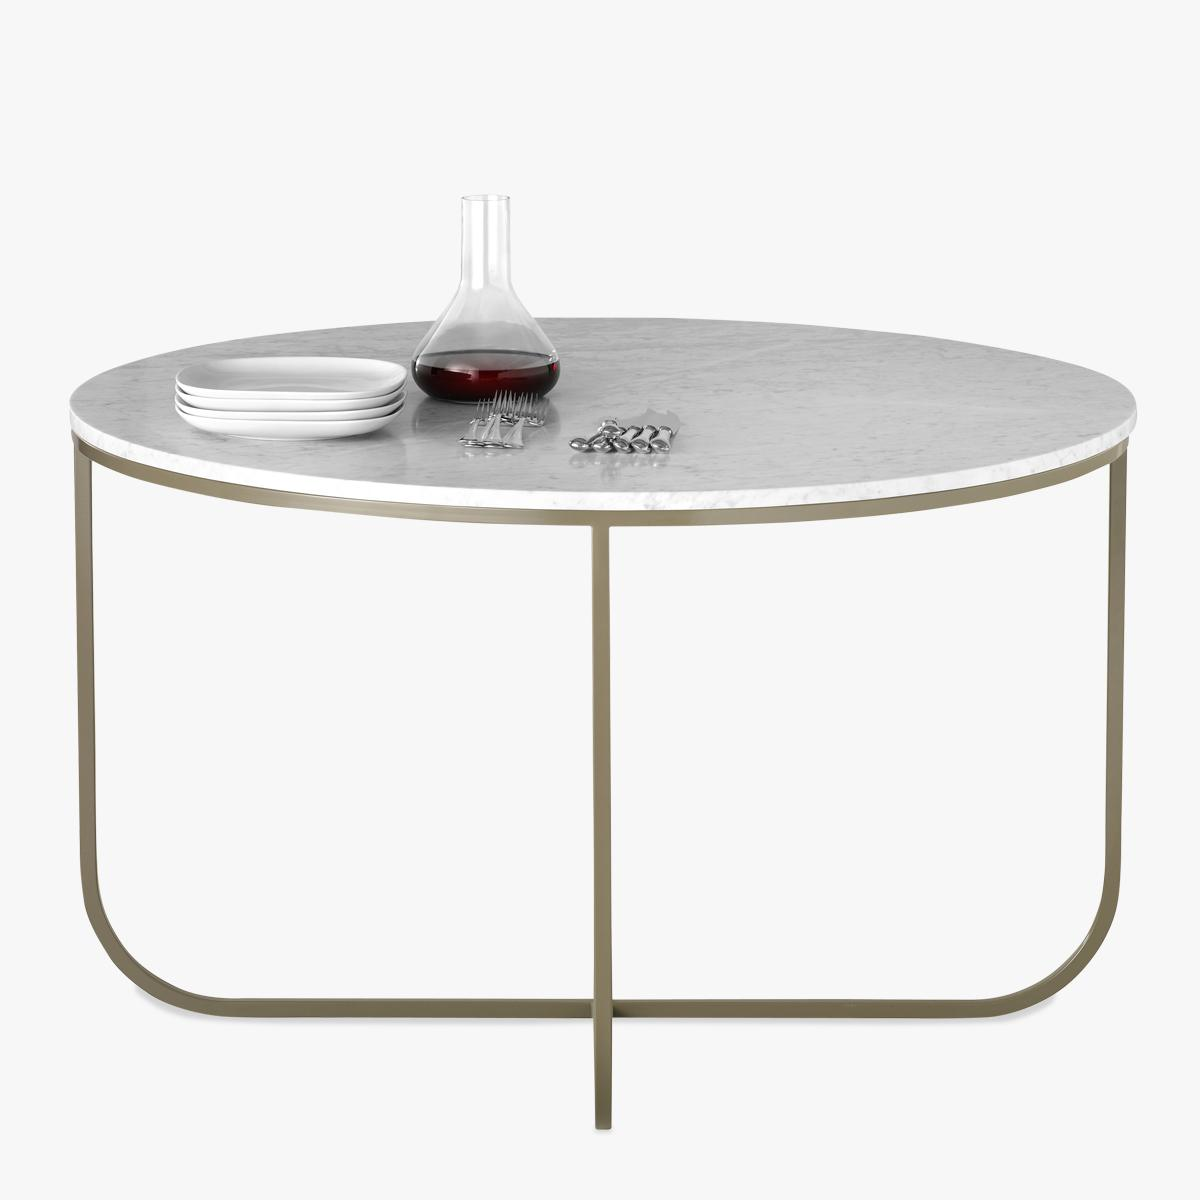 Tati Table Round 120 HR-1200